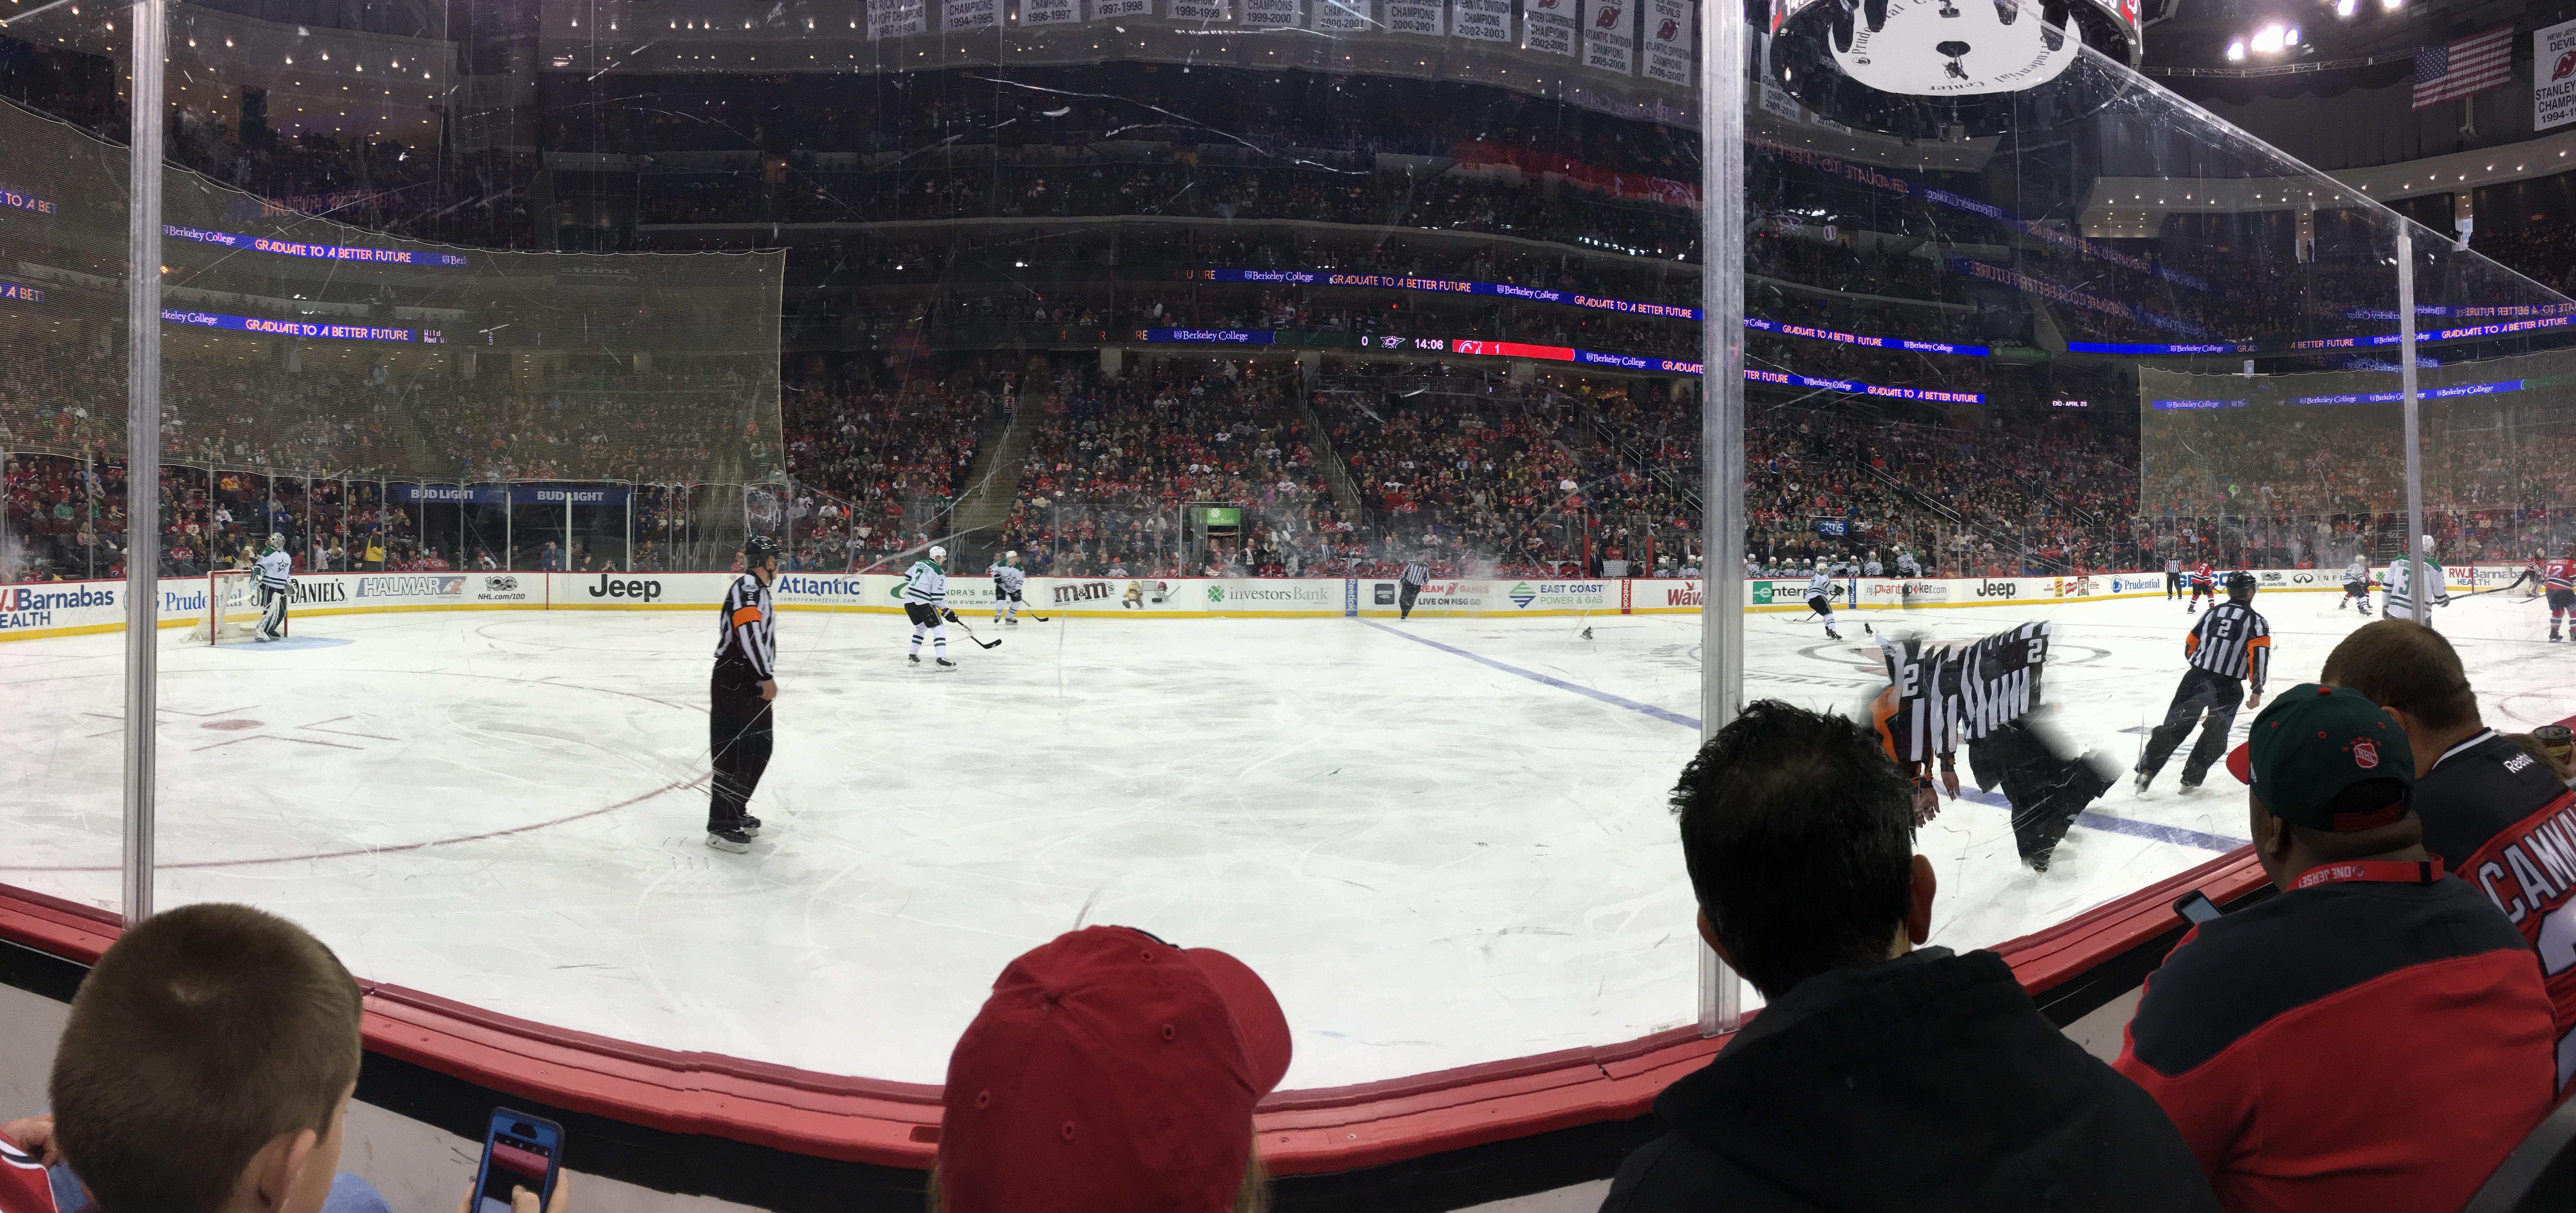 Prudential Center Section 18 Row GL2 Seat 12